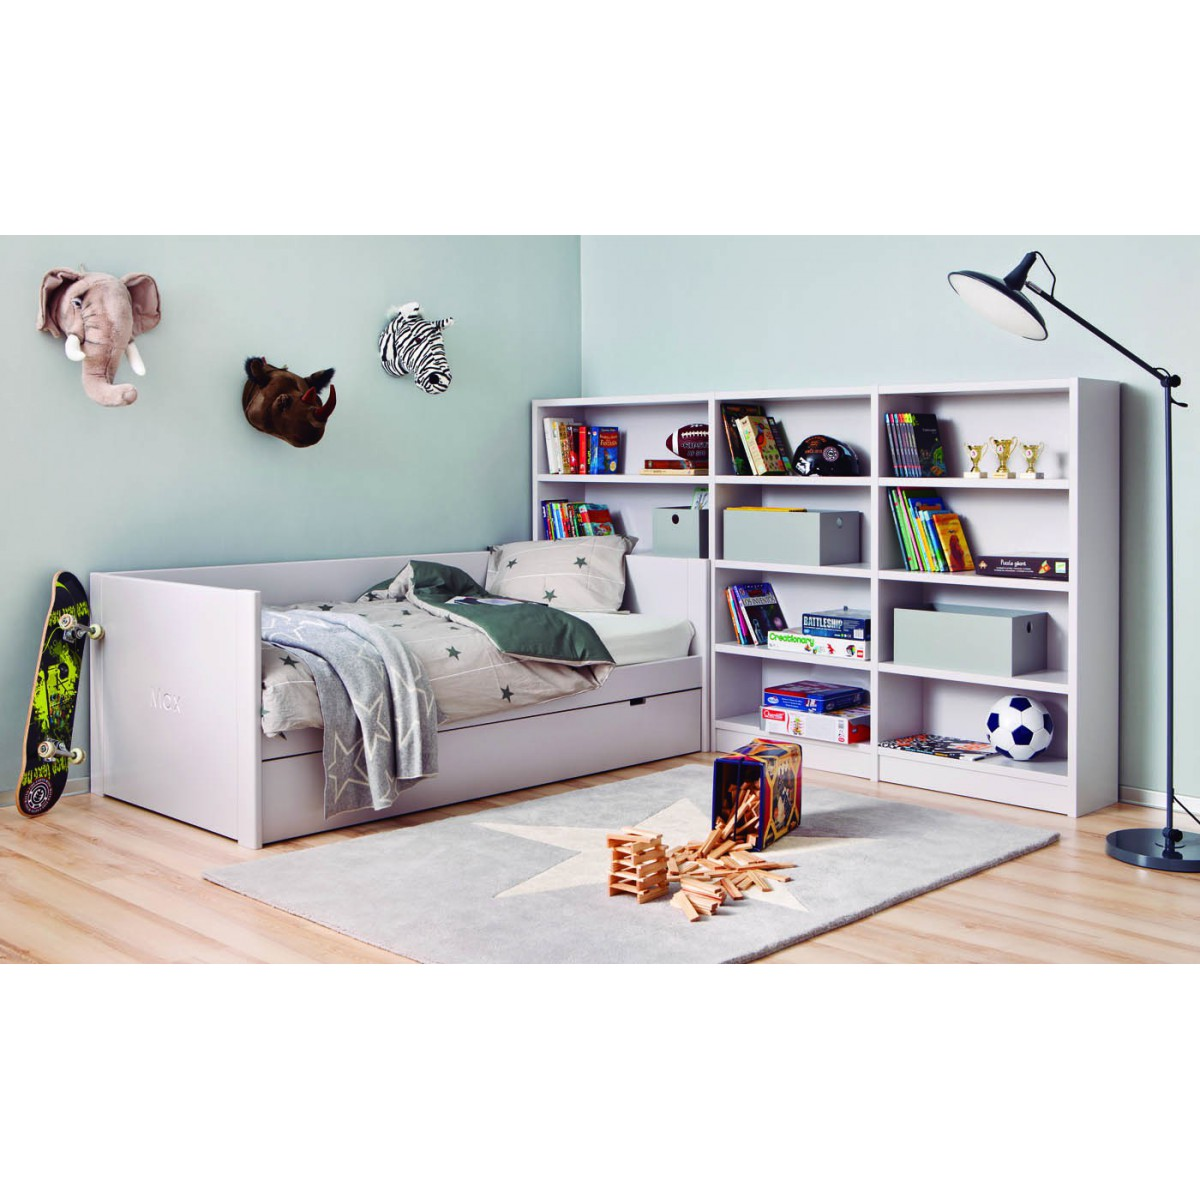 biblioth que pour chambre d 39 enfants juniors de qualit sign e asoral. Black Bedroom Furniture Sets. Home Design Ideas